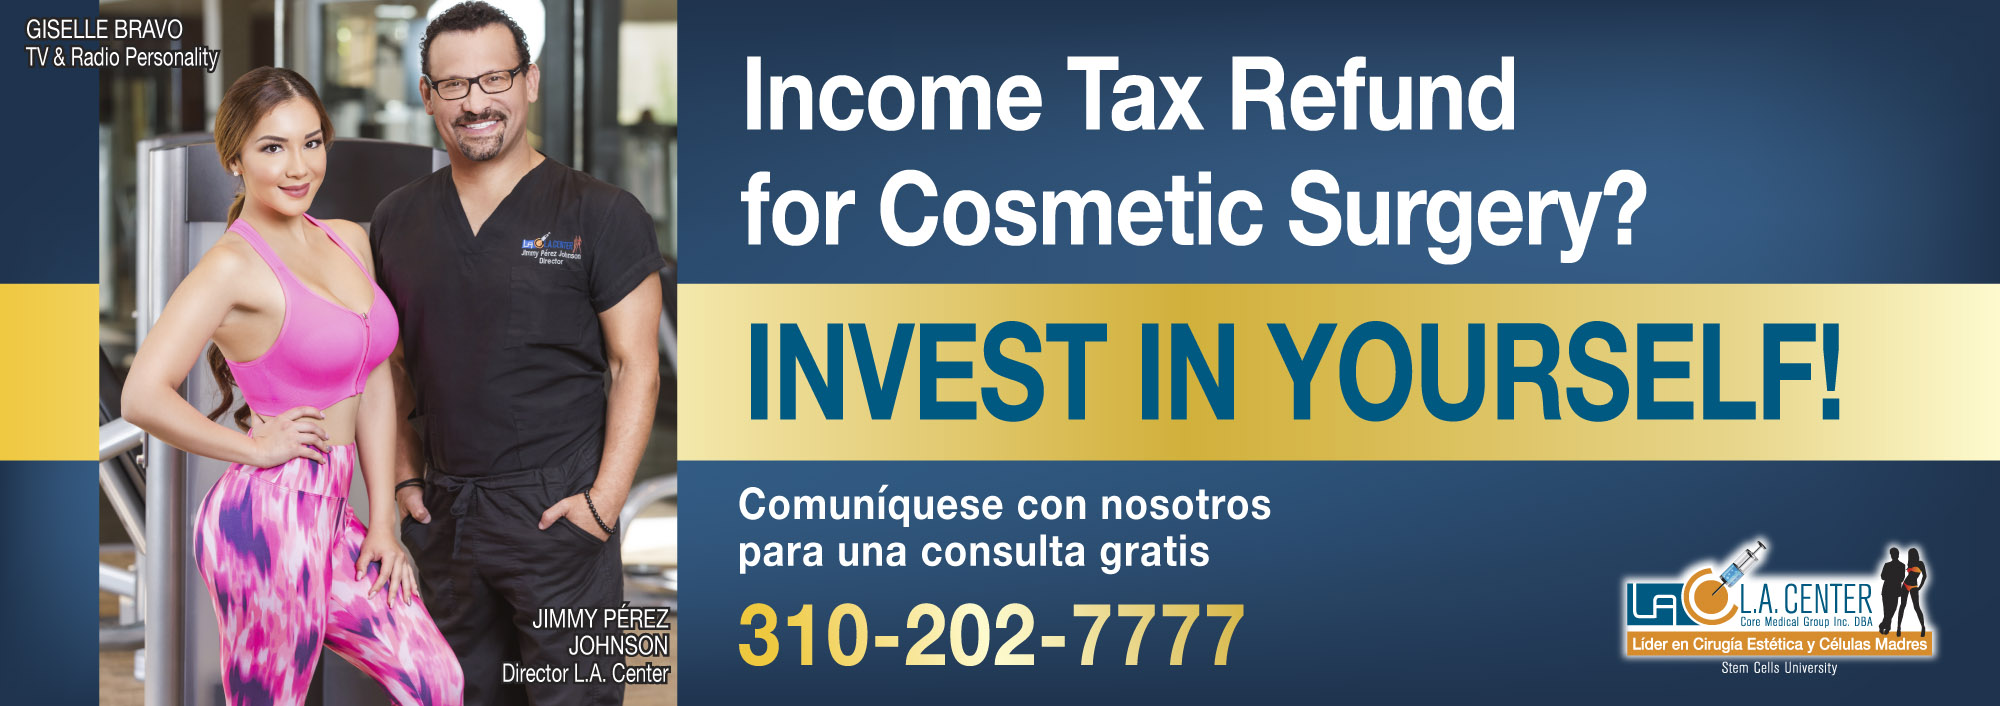 Banner_Web_MAR18TAX-REFUND